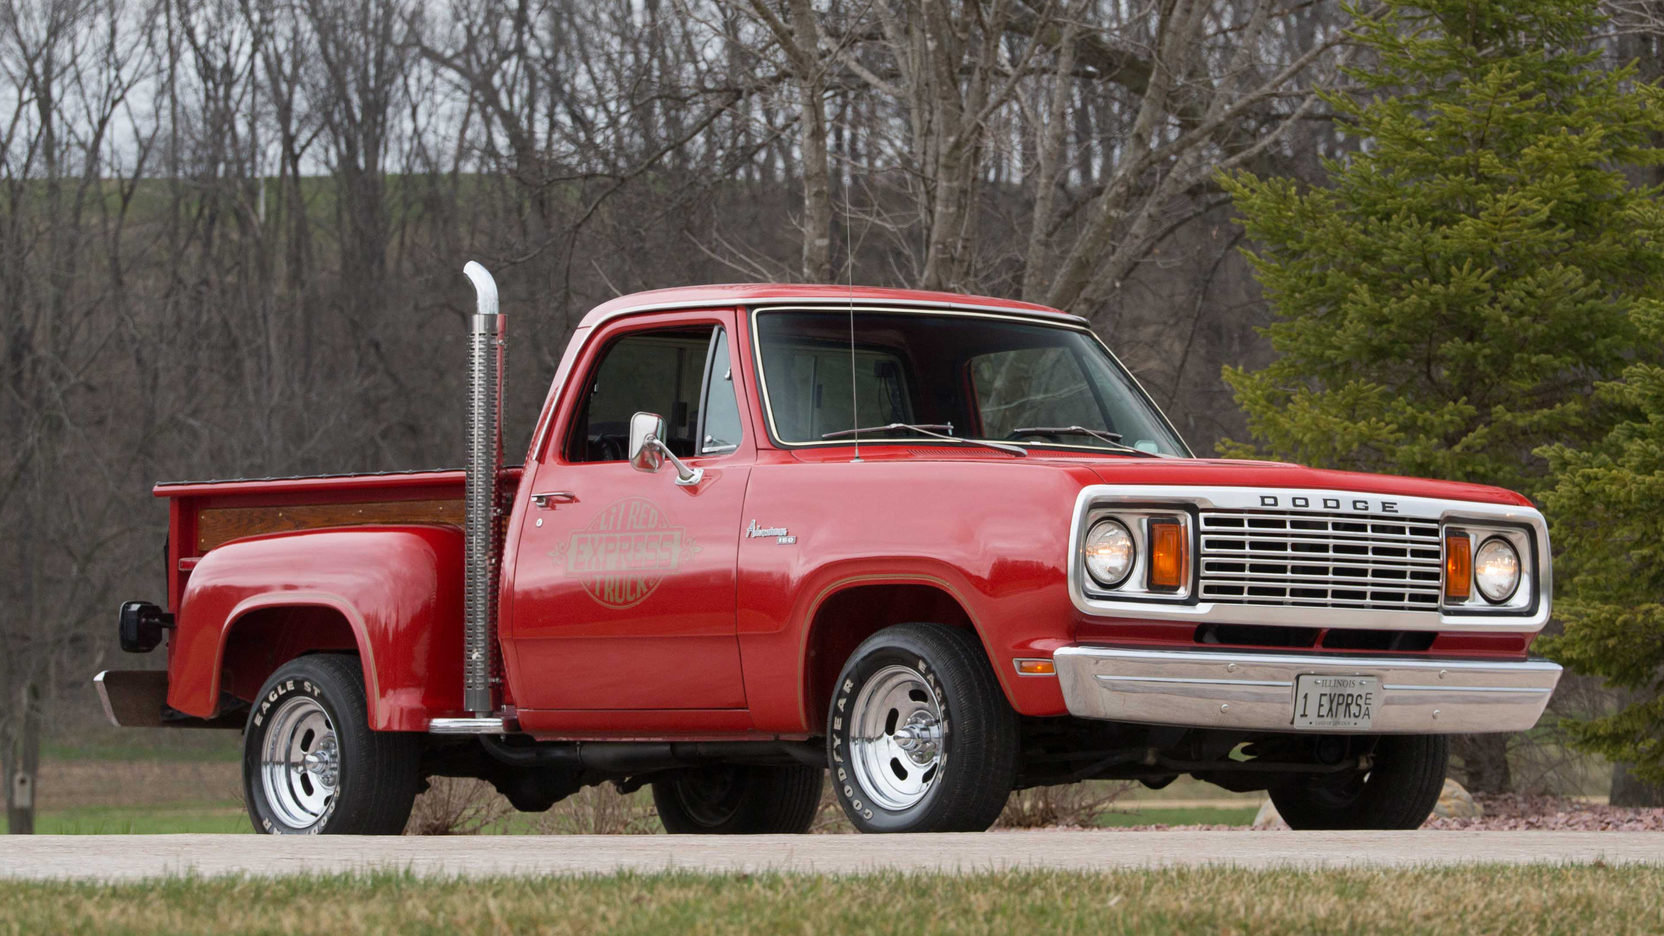 1979 Dodge Li'l Red Express 3/4 passenger